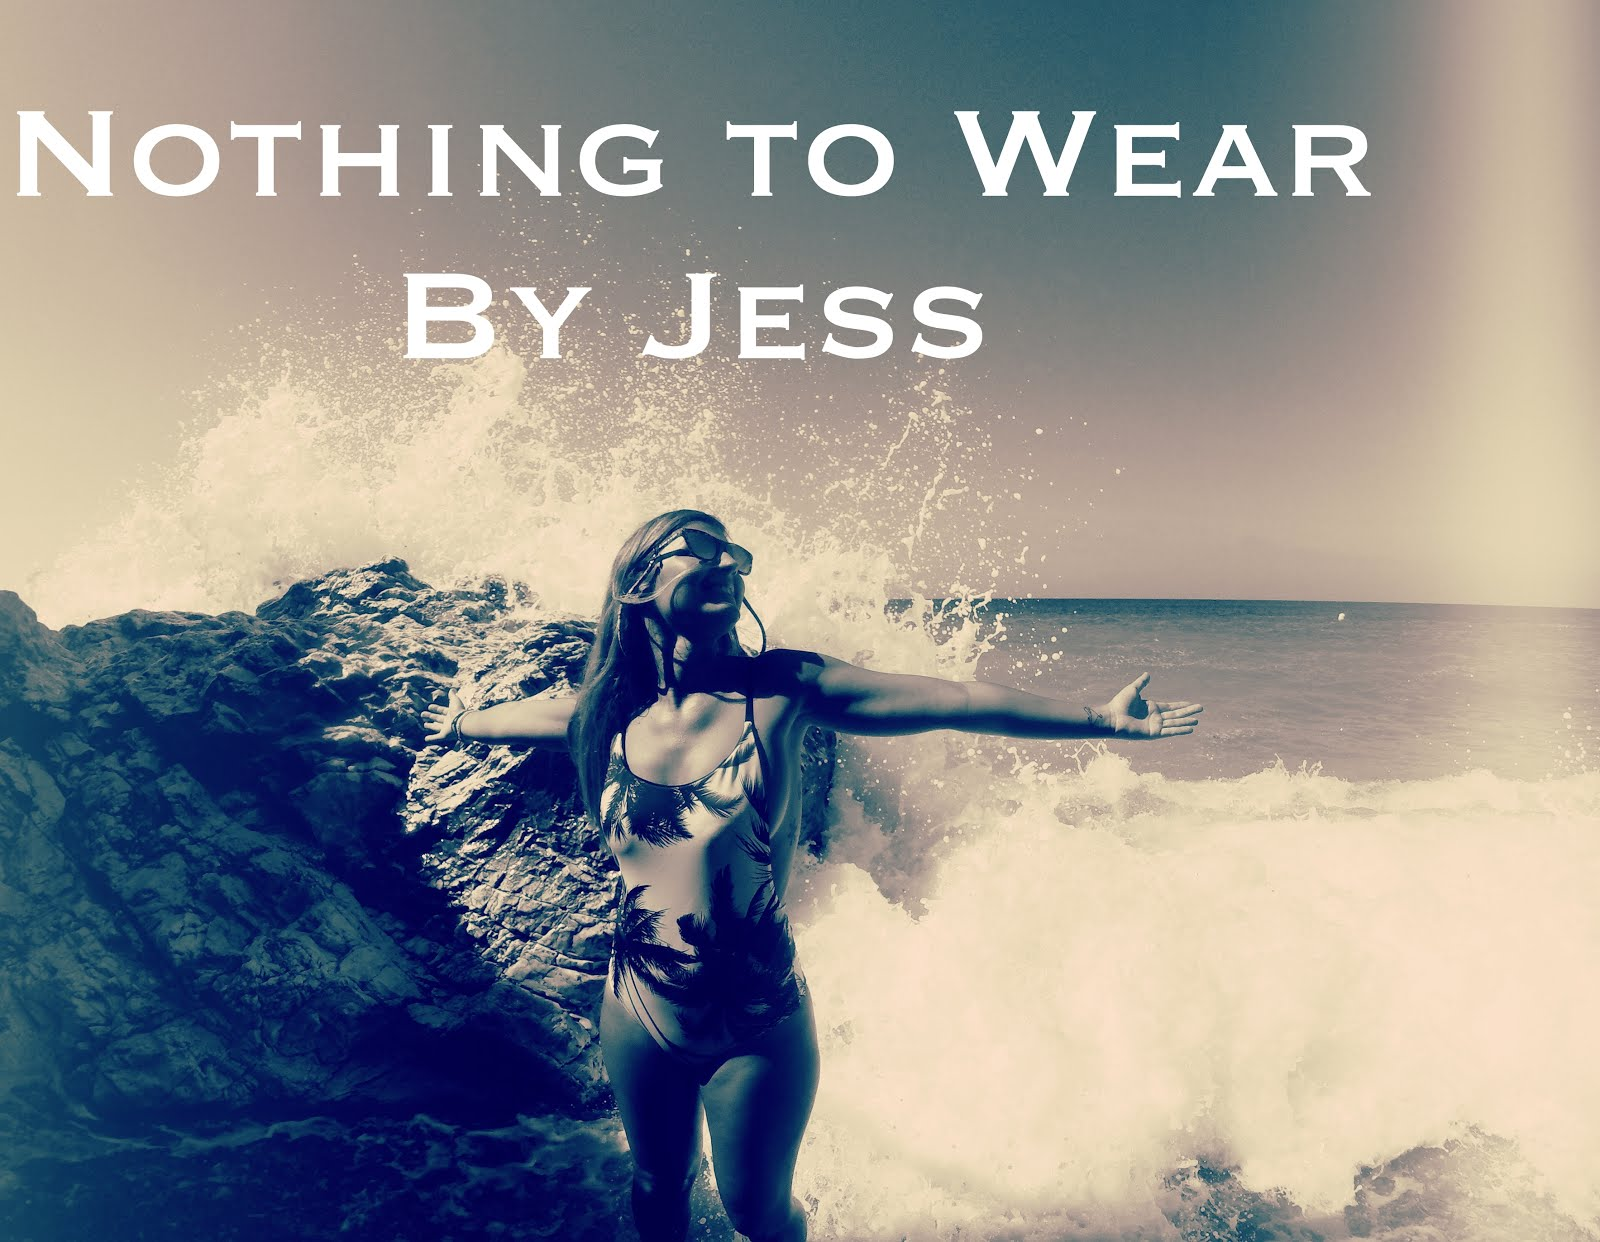 NOTHING TO WEAR BY  JESS